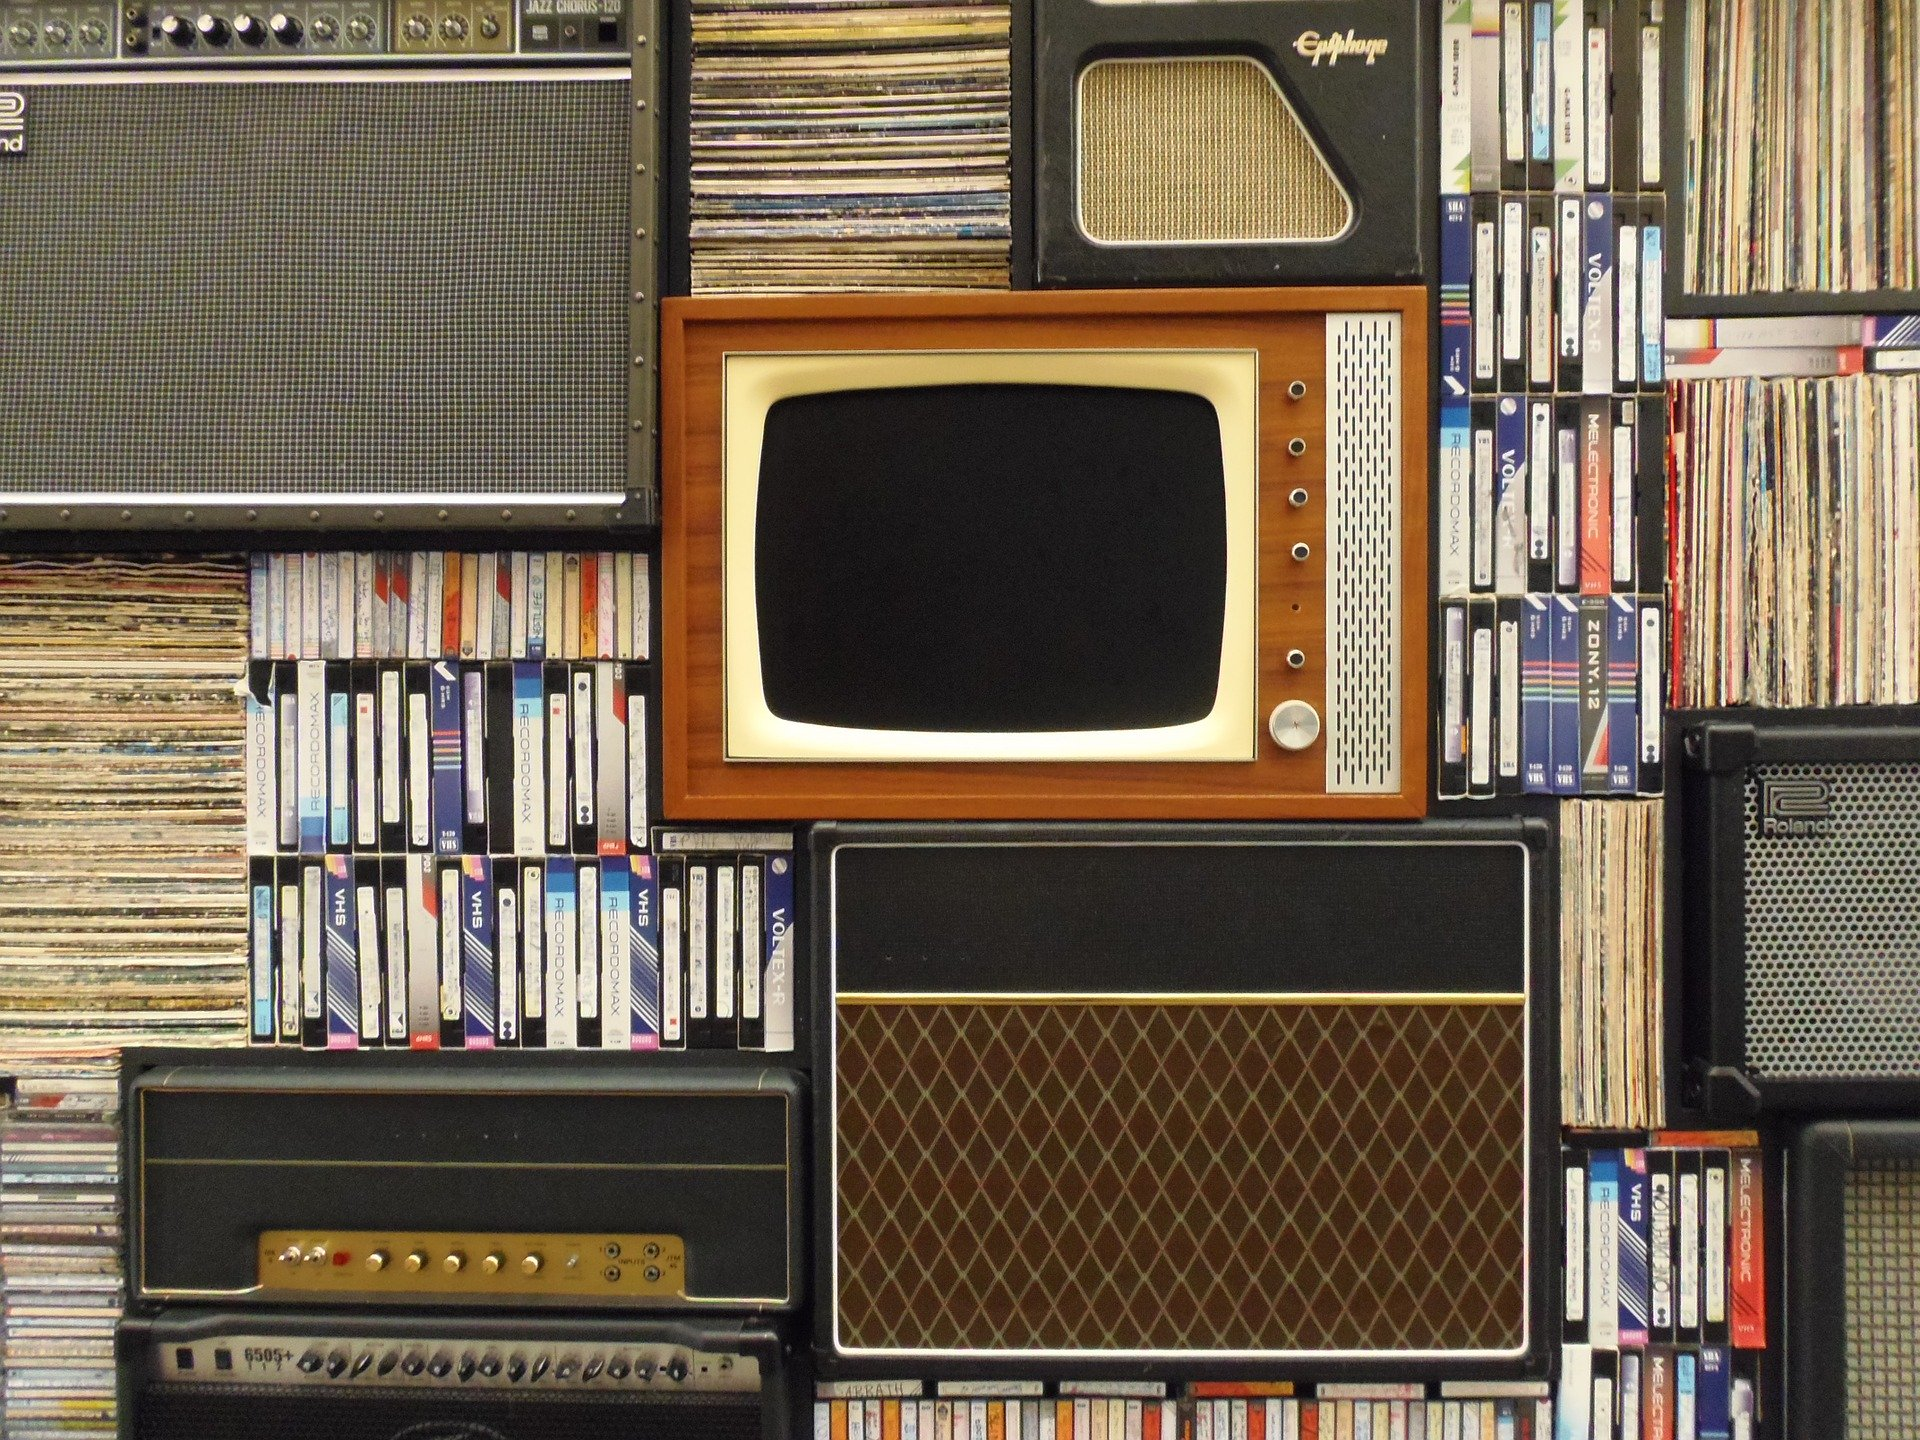 old-tv-1149416_1920